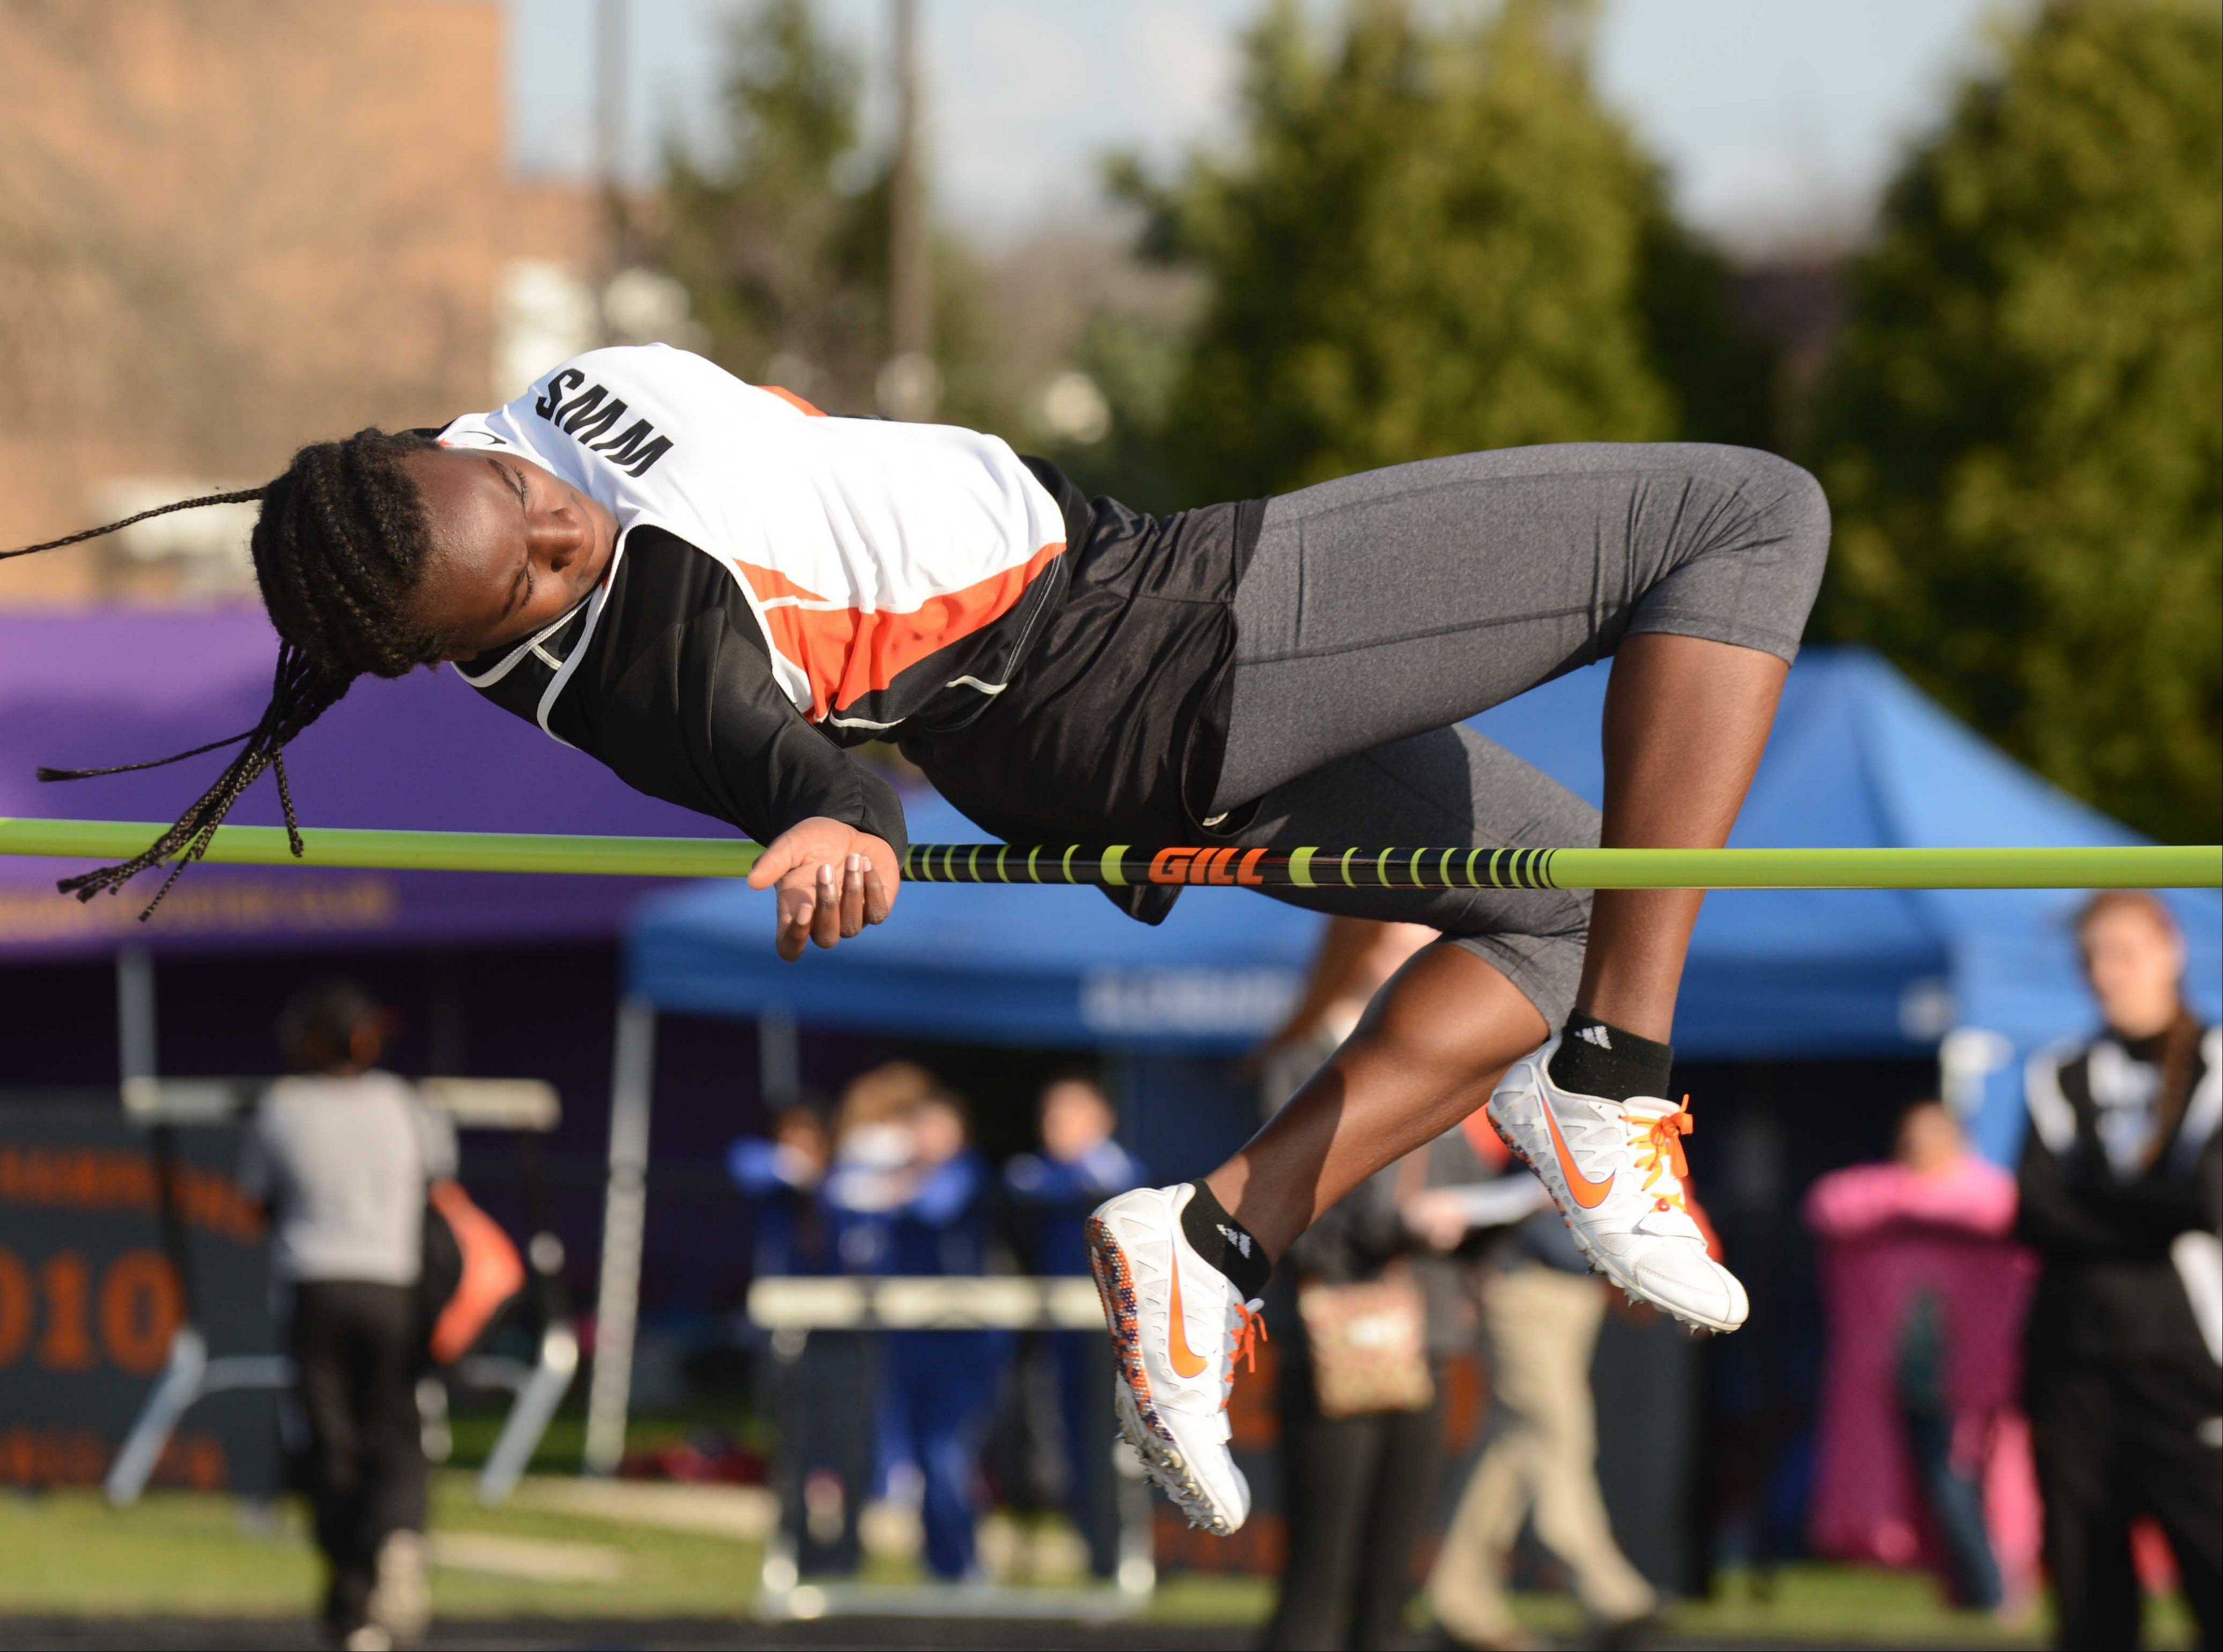 Teso Coker of Wheaton Warrenville south just clears the bar at 5.1 during the Wheaton Warrenville South girls track meet Friday.